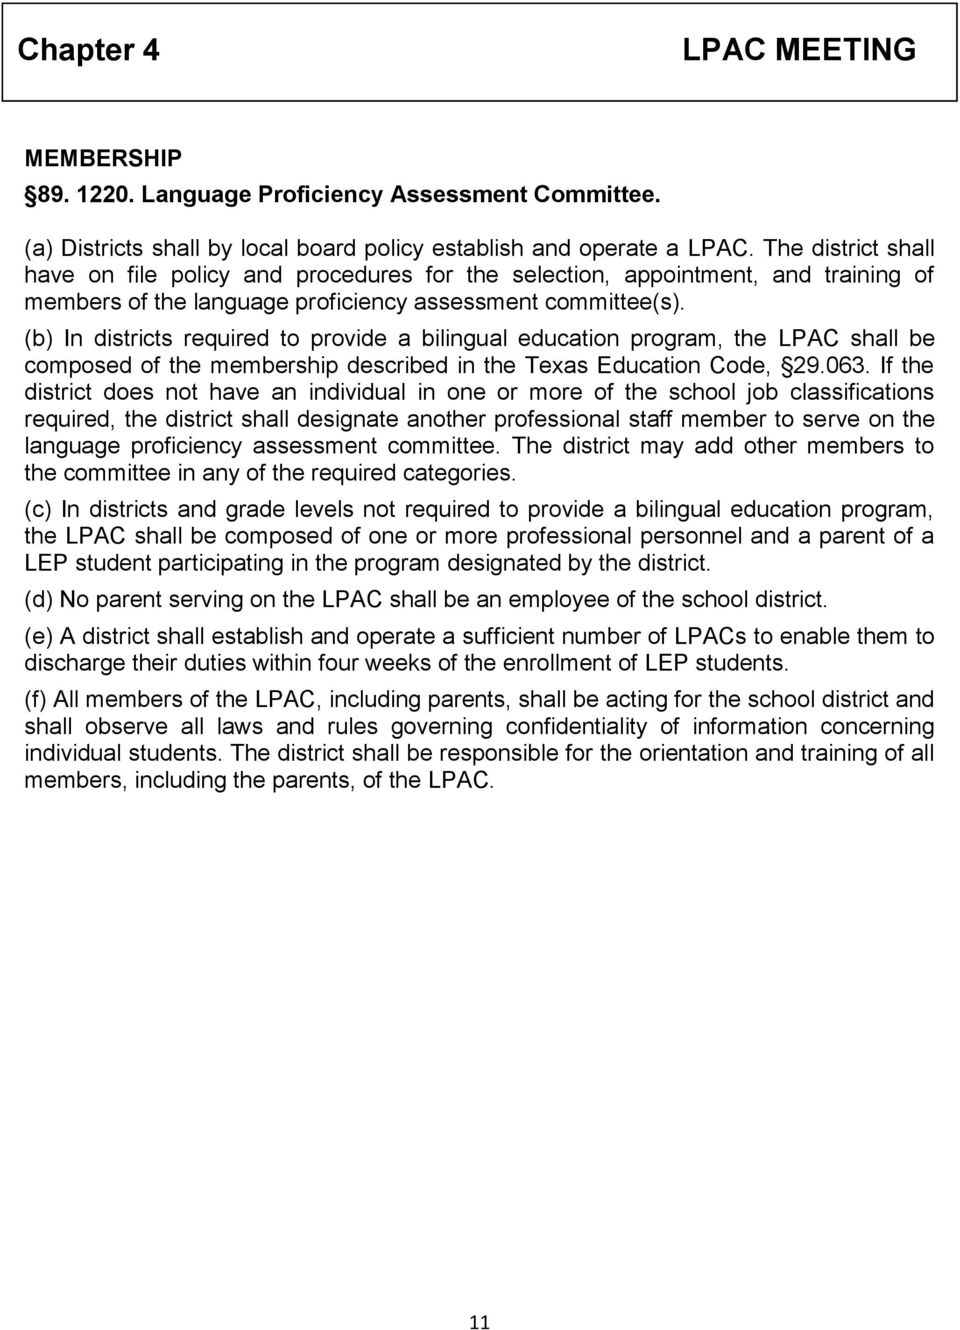 (b) In districts required to provide a bilingual education program, the LPAC shall be composed of the membership described in the Texas Education Code, 29.063.